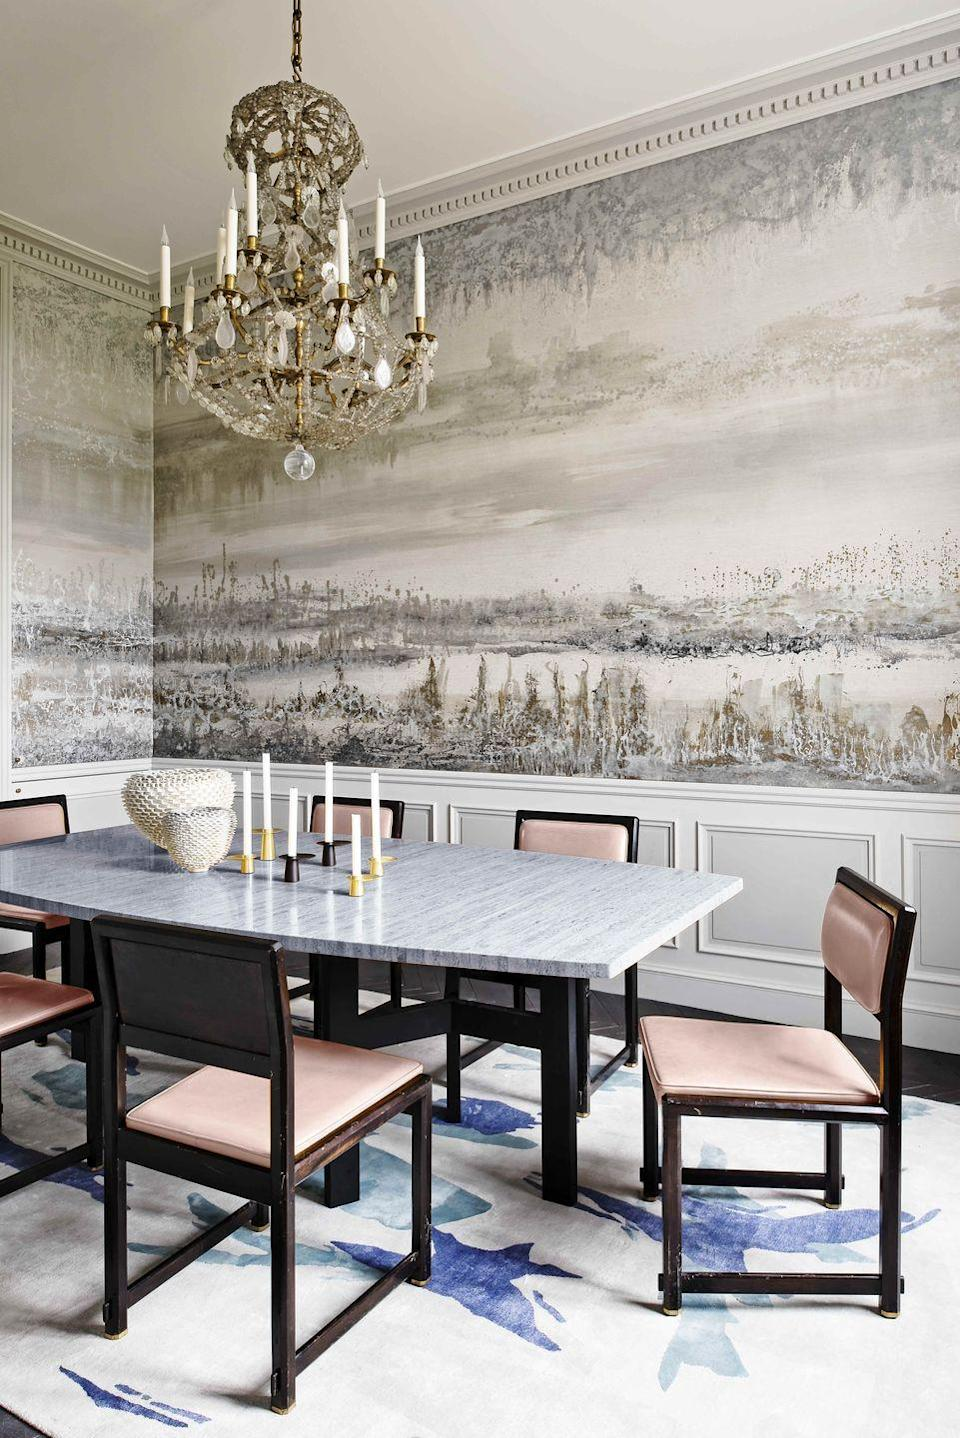 """<p>Within the dining room of this <a href=""""https://www.veranda.com/home-decorators/a30145127/jean-louis-deniot-paris-flat/"""" rel=""""nofollow noopener"""" target=""""_blank"""" data-ylk=""""slk:18th-century Paris apartment"""" class=""""link rapid-noclick-resp"""">18th-century Paris apartment</a>, a grisaille and metallic mural by <a href=""""http://www.florencegirette.com"""" rel=""""nofollow noopener"""" target=""""_blank"""" data-ylk=""""slk:Florence Girette"""" class=""""link rapid-noclick-resp"""">Florence Girette</a> envelopes the entire room, echoing the glimmering lights from the Tuileries outside. To bring color back into the monochromatic space, designer <a href=""""https://www.deniot.com"""" rel=""""nofollow noopener"""" target=""""_blank"""" data-ylk=""""slk:Jean-Louis Deniot"""" class=""""link rapid-noclick-resp"""">Jean-Louis Deniot</a> laid down a rug dressed with brilliant blue tones from <a href=""""https://www.diurne.com/en/gallery/"""" rel=""""nofollow noopener"""" target=""""_blank"""" data-ylk=""""slk:Galerie Diurne"""" class=""""link rapid-noclick-resp"""">Galerie Diurne</a>. Both the pink chairs and dining table are vintage. </p>"""